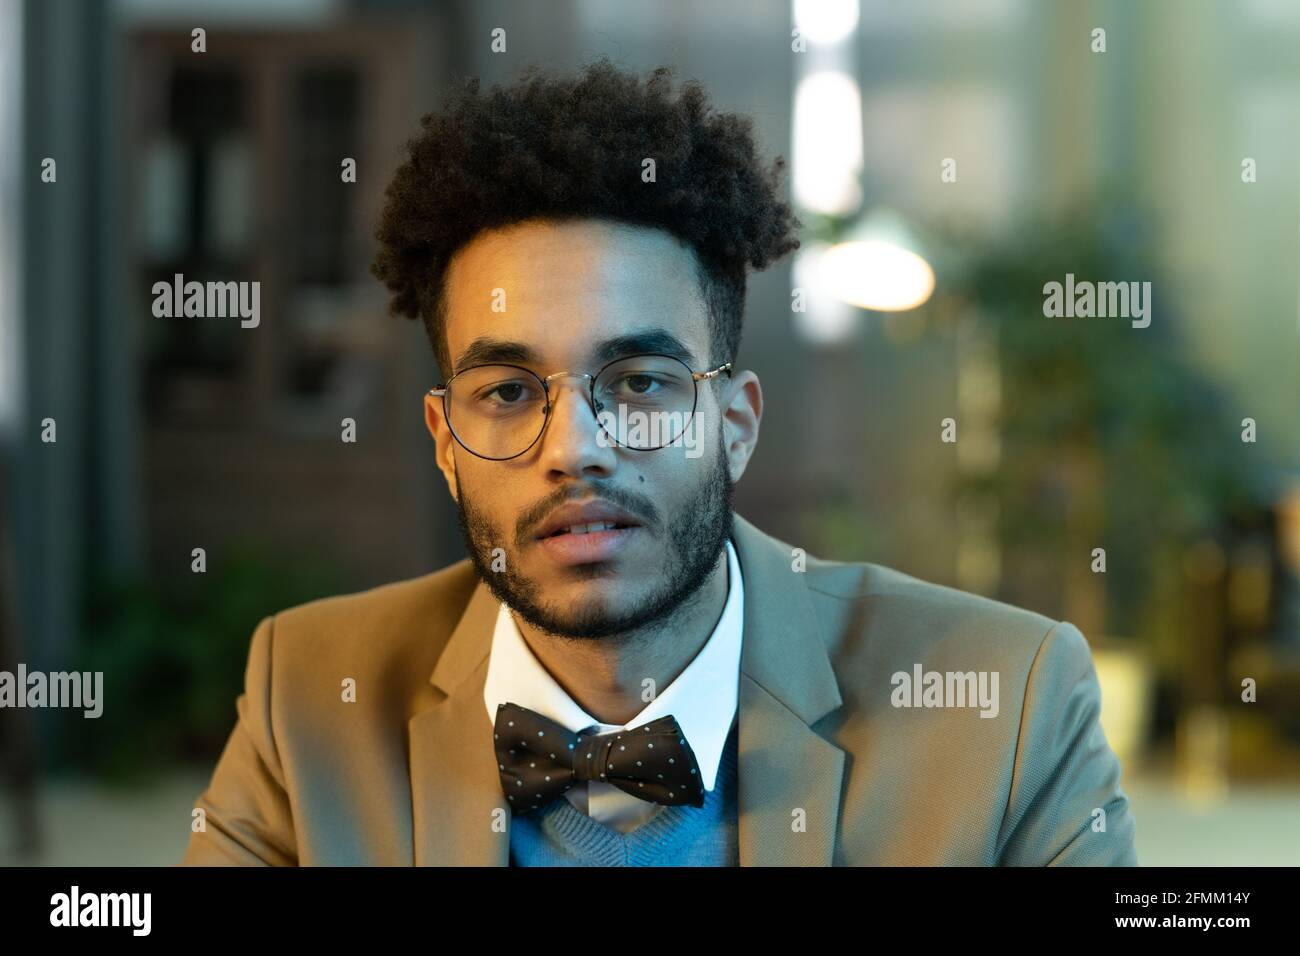 Portrait of handsome young man with Afro curly hair wearing round-shaped glasses and bow tie sitting in office Stock Photo